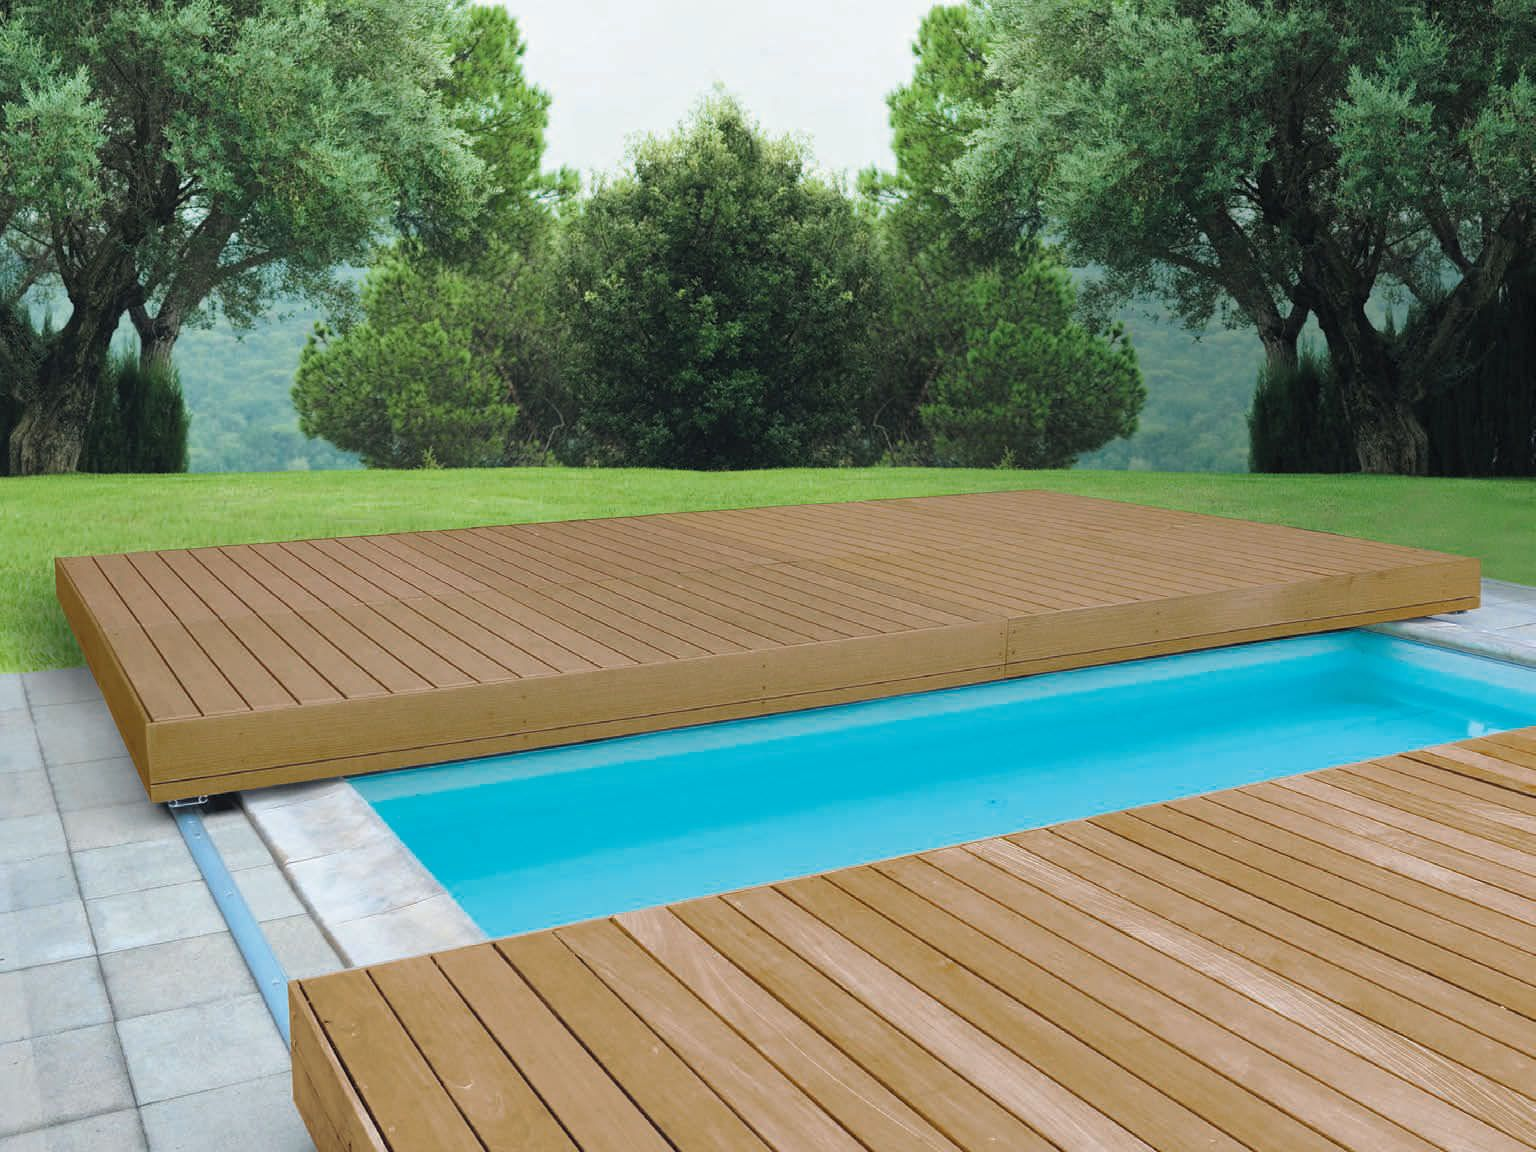 Pool Garten Winter Security Sliding Deck Pool Cover Walter Piscine Pool Pool